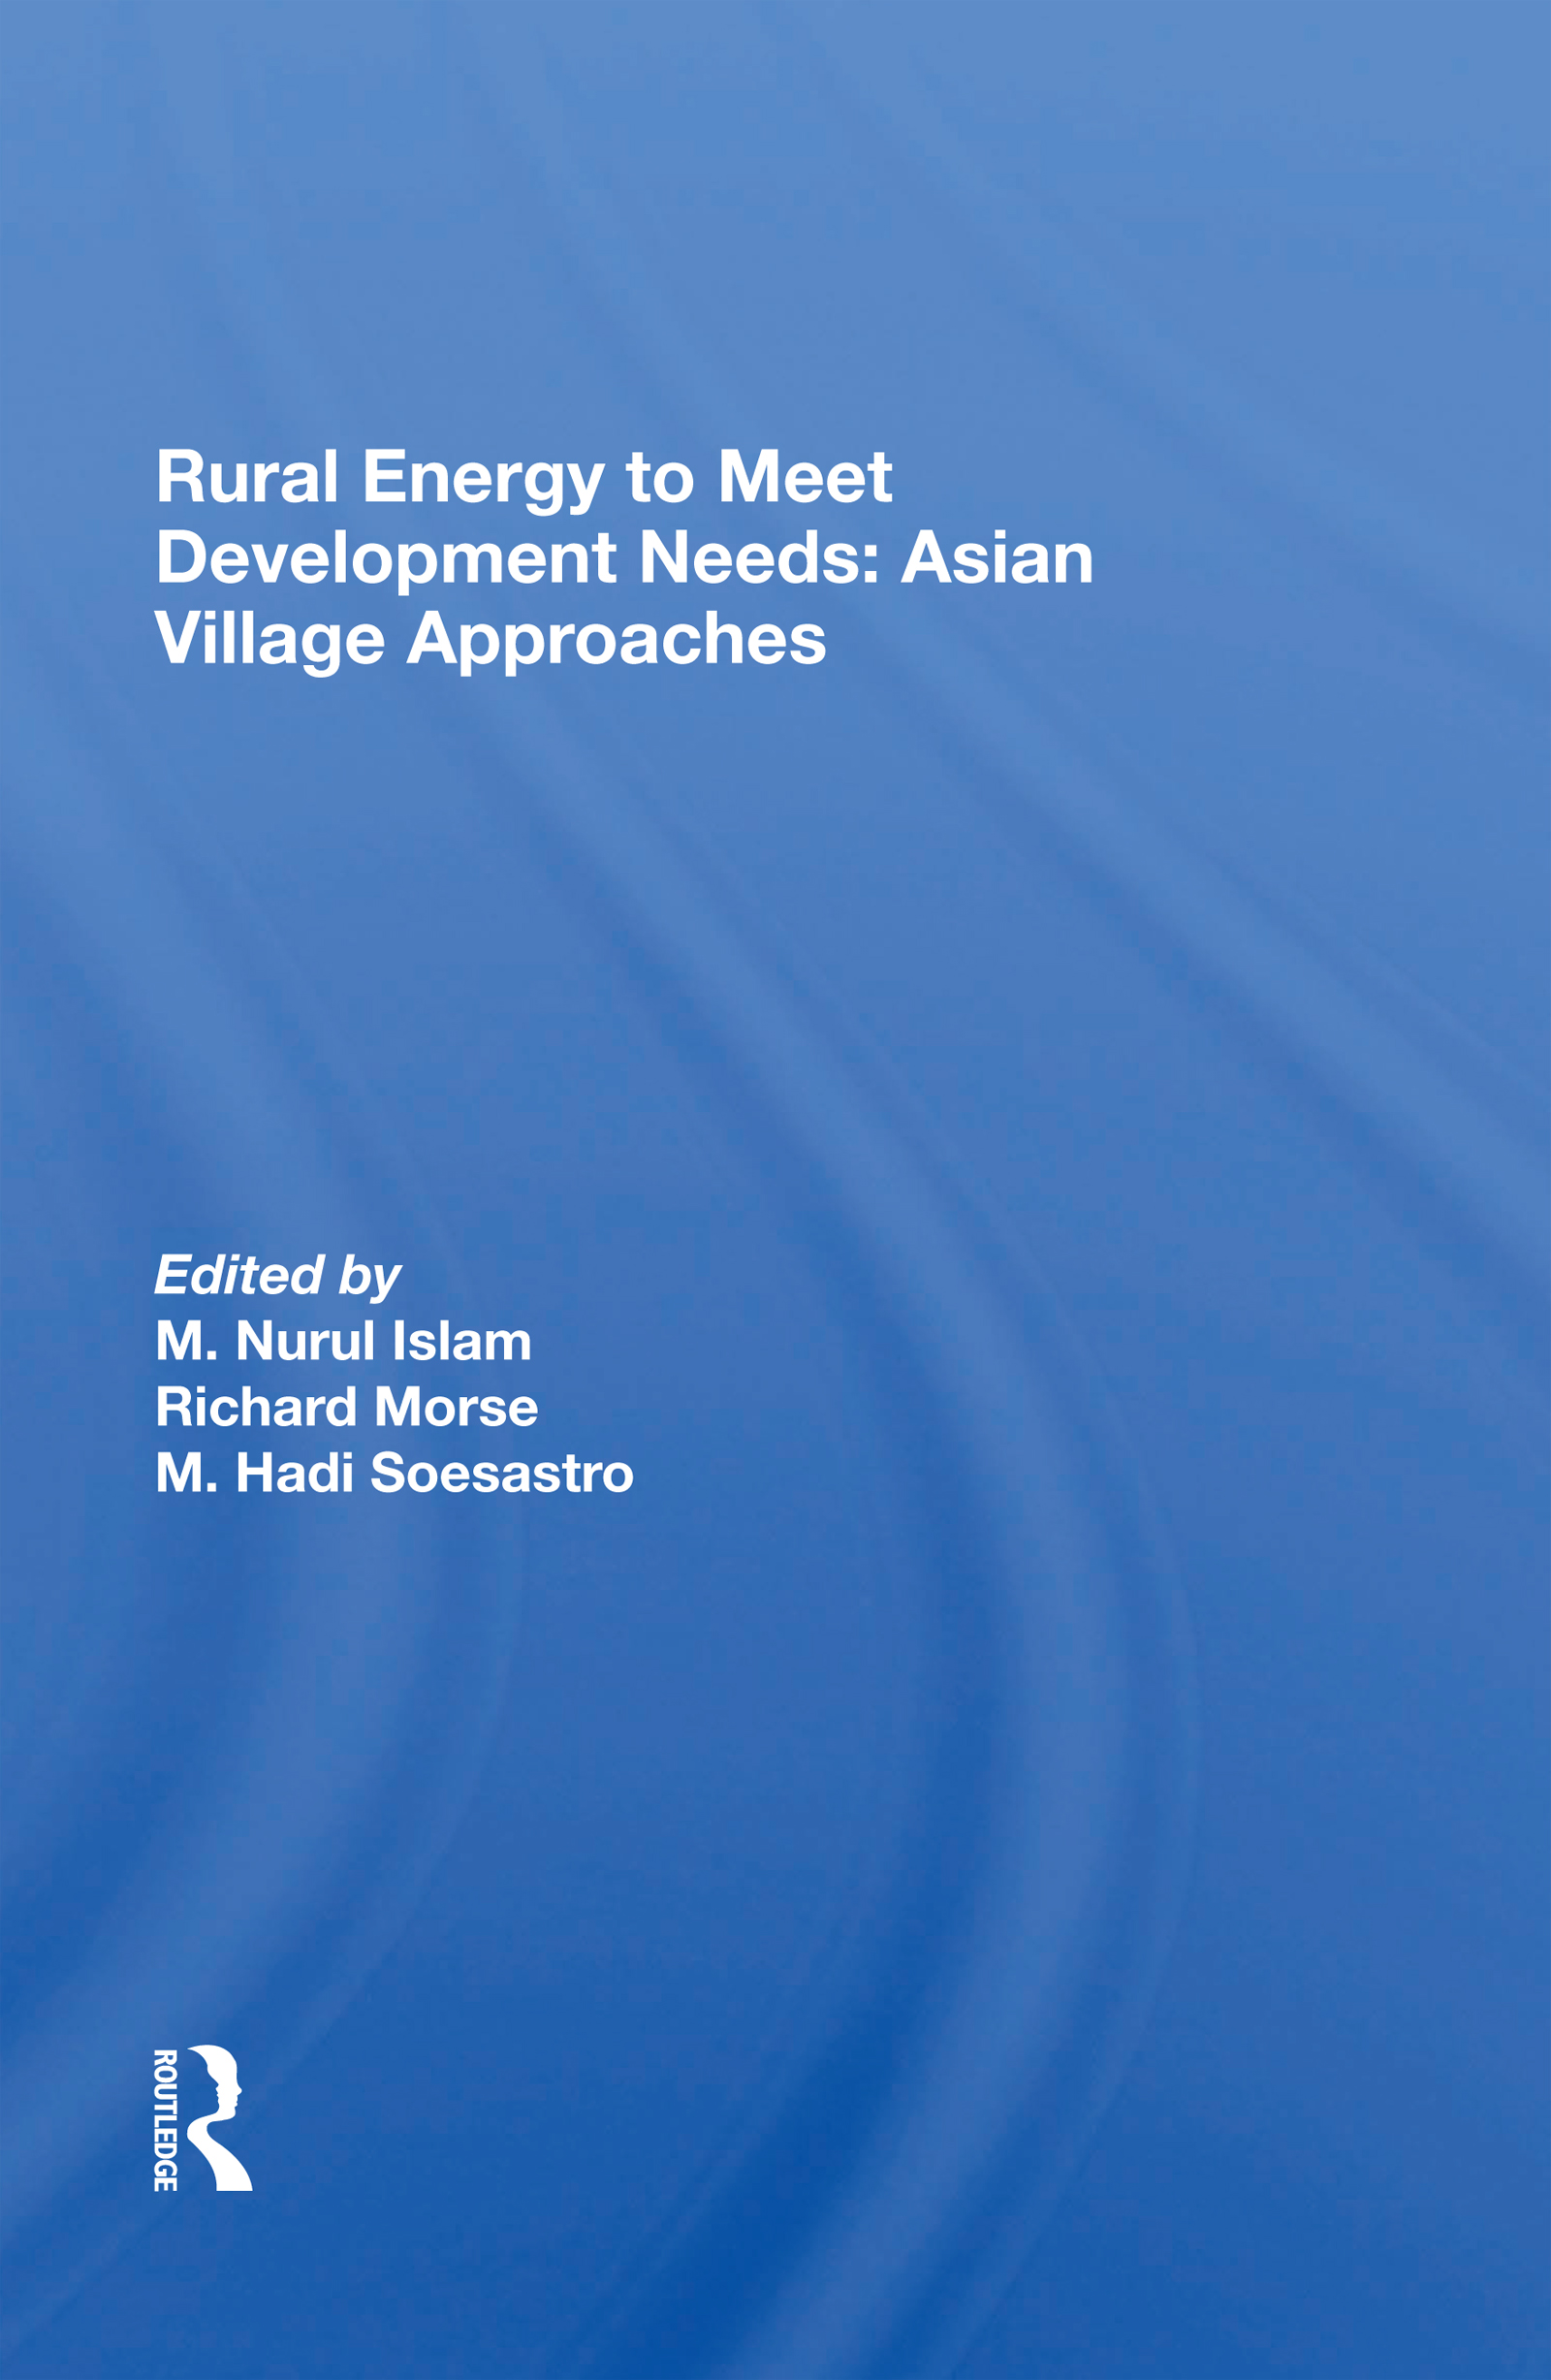 Organizing Current Information for Rural Energy and Development Planning